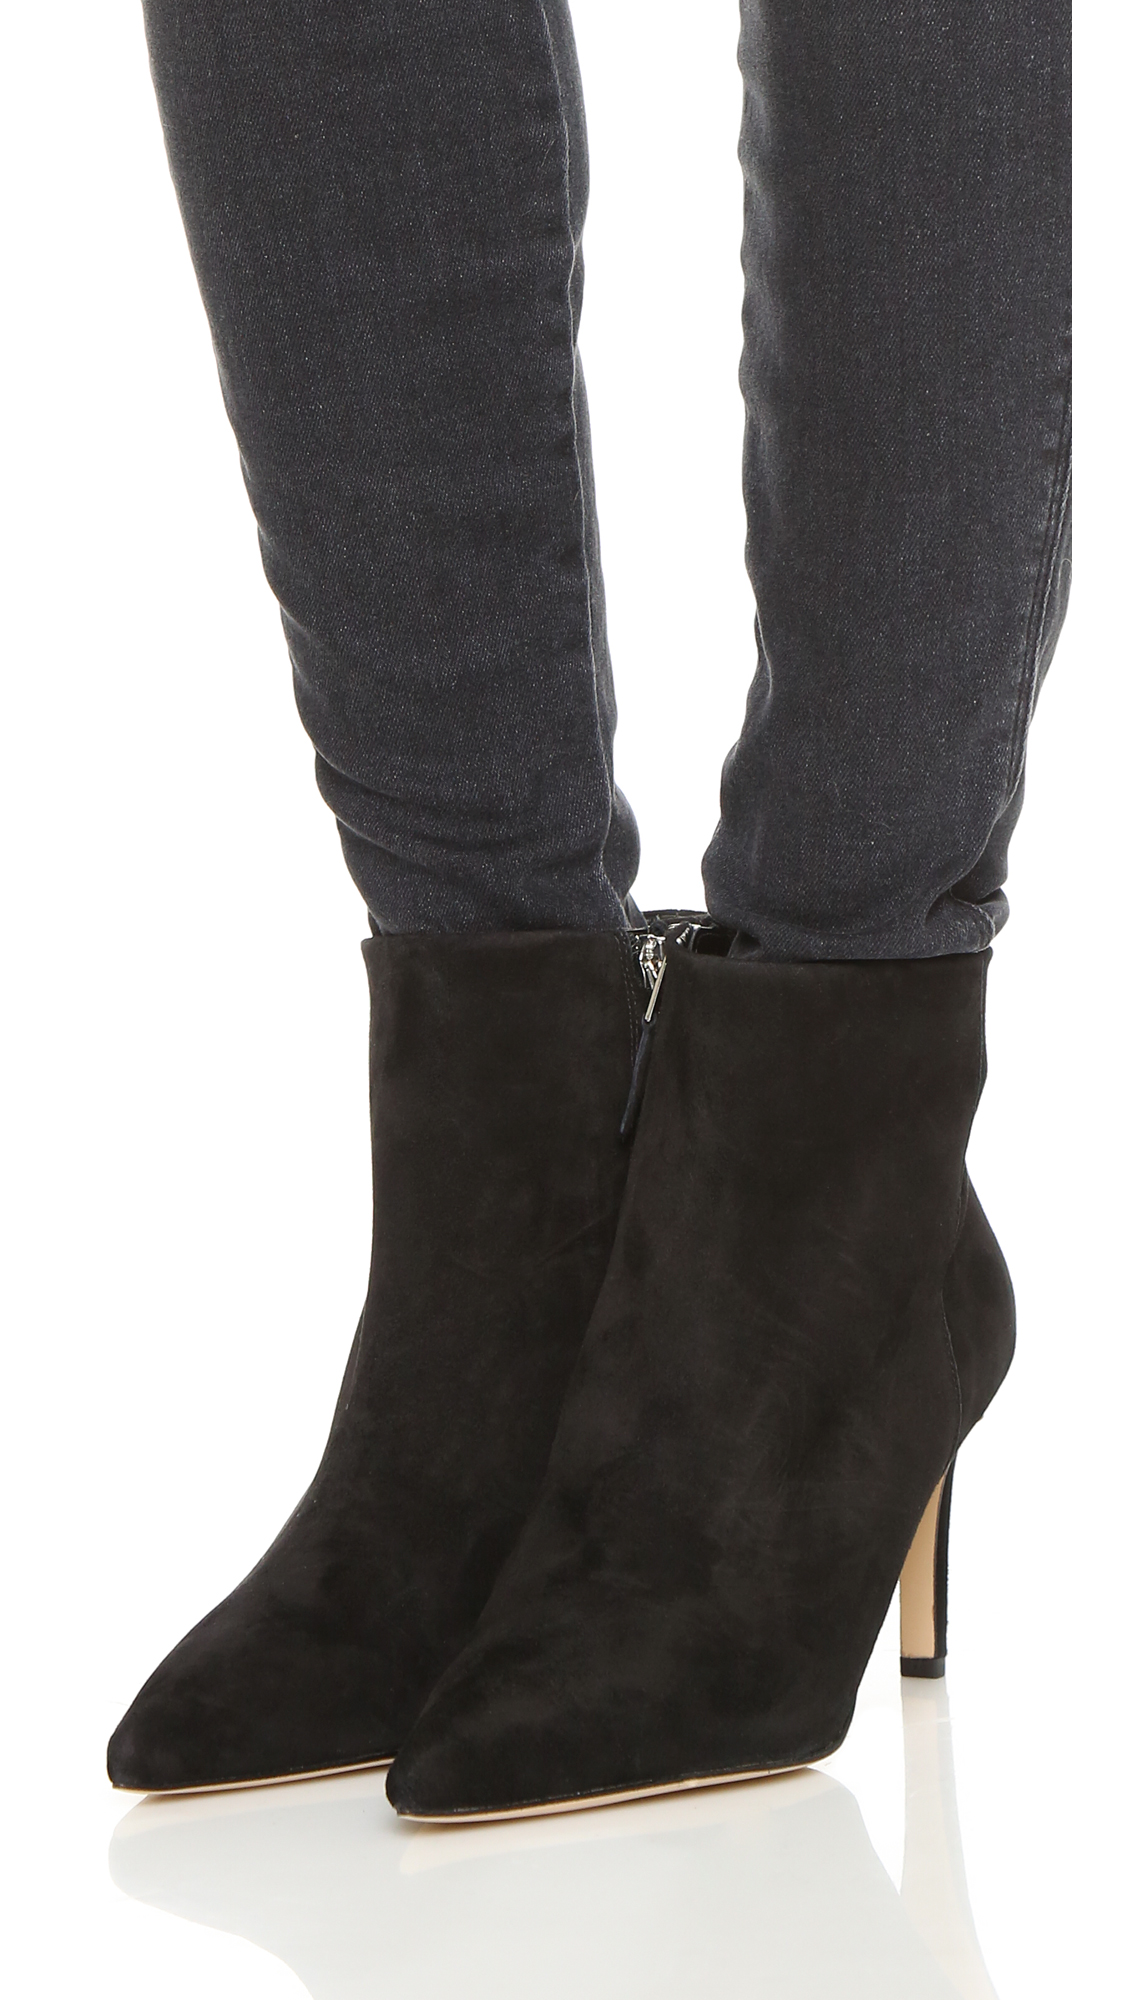 5b08fb6be96e86 Sam Edelman Karen Suede Booties